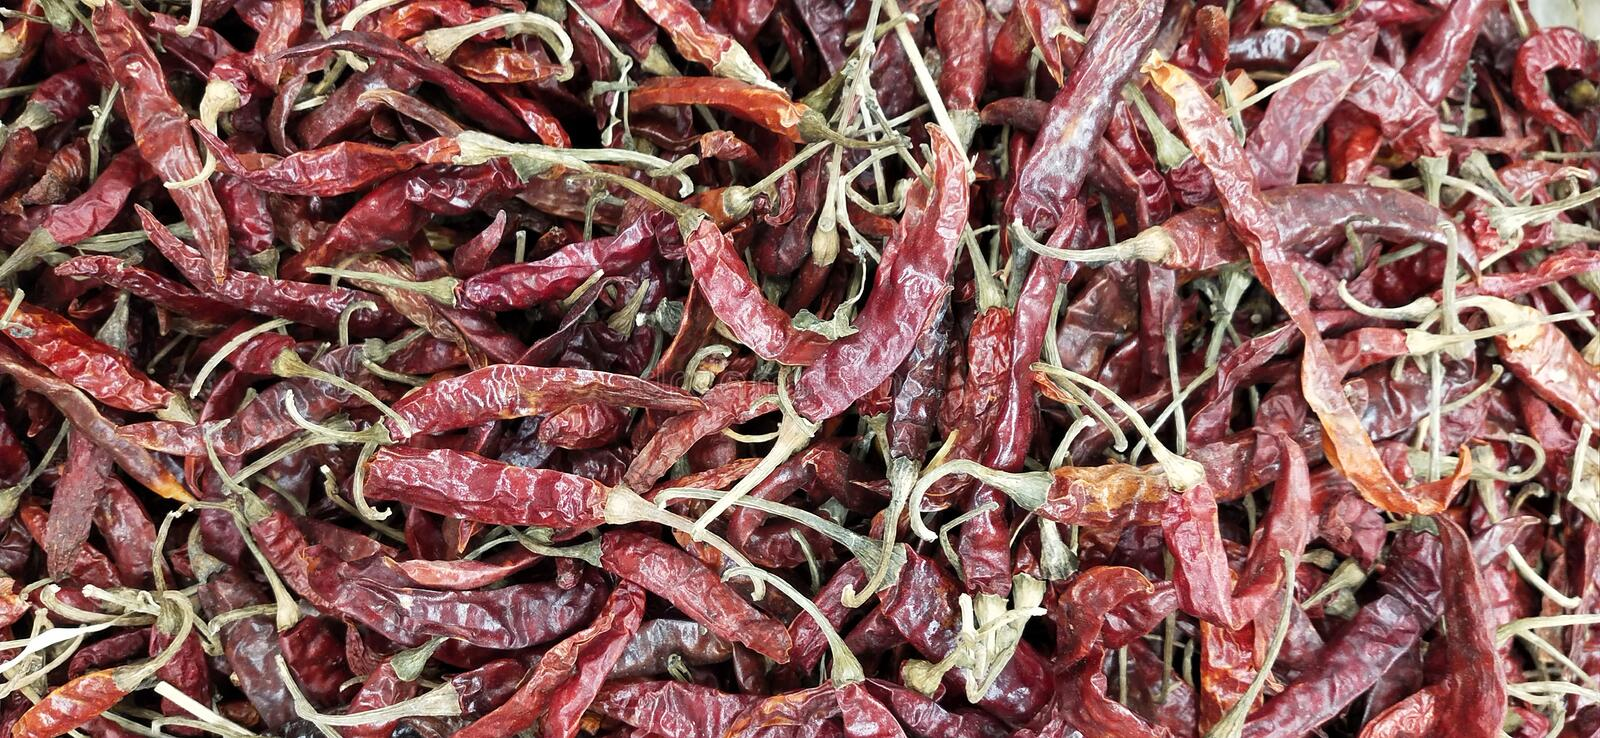 Pile of dry red hot and spicy chillies stock photo